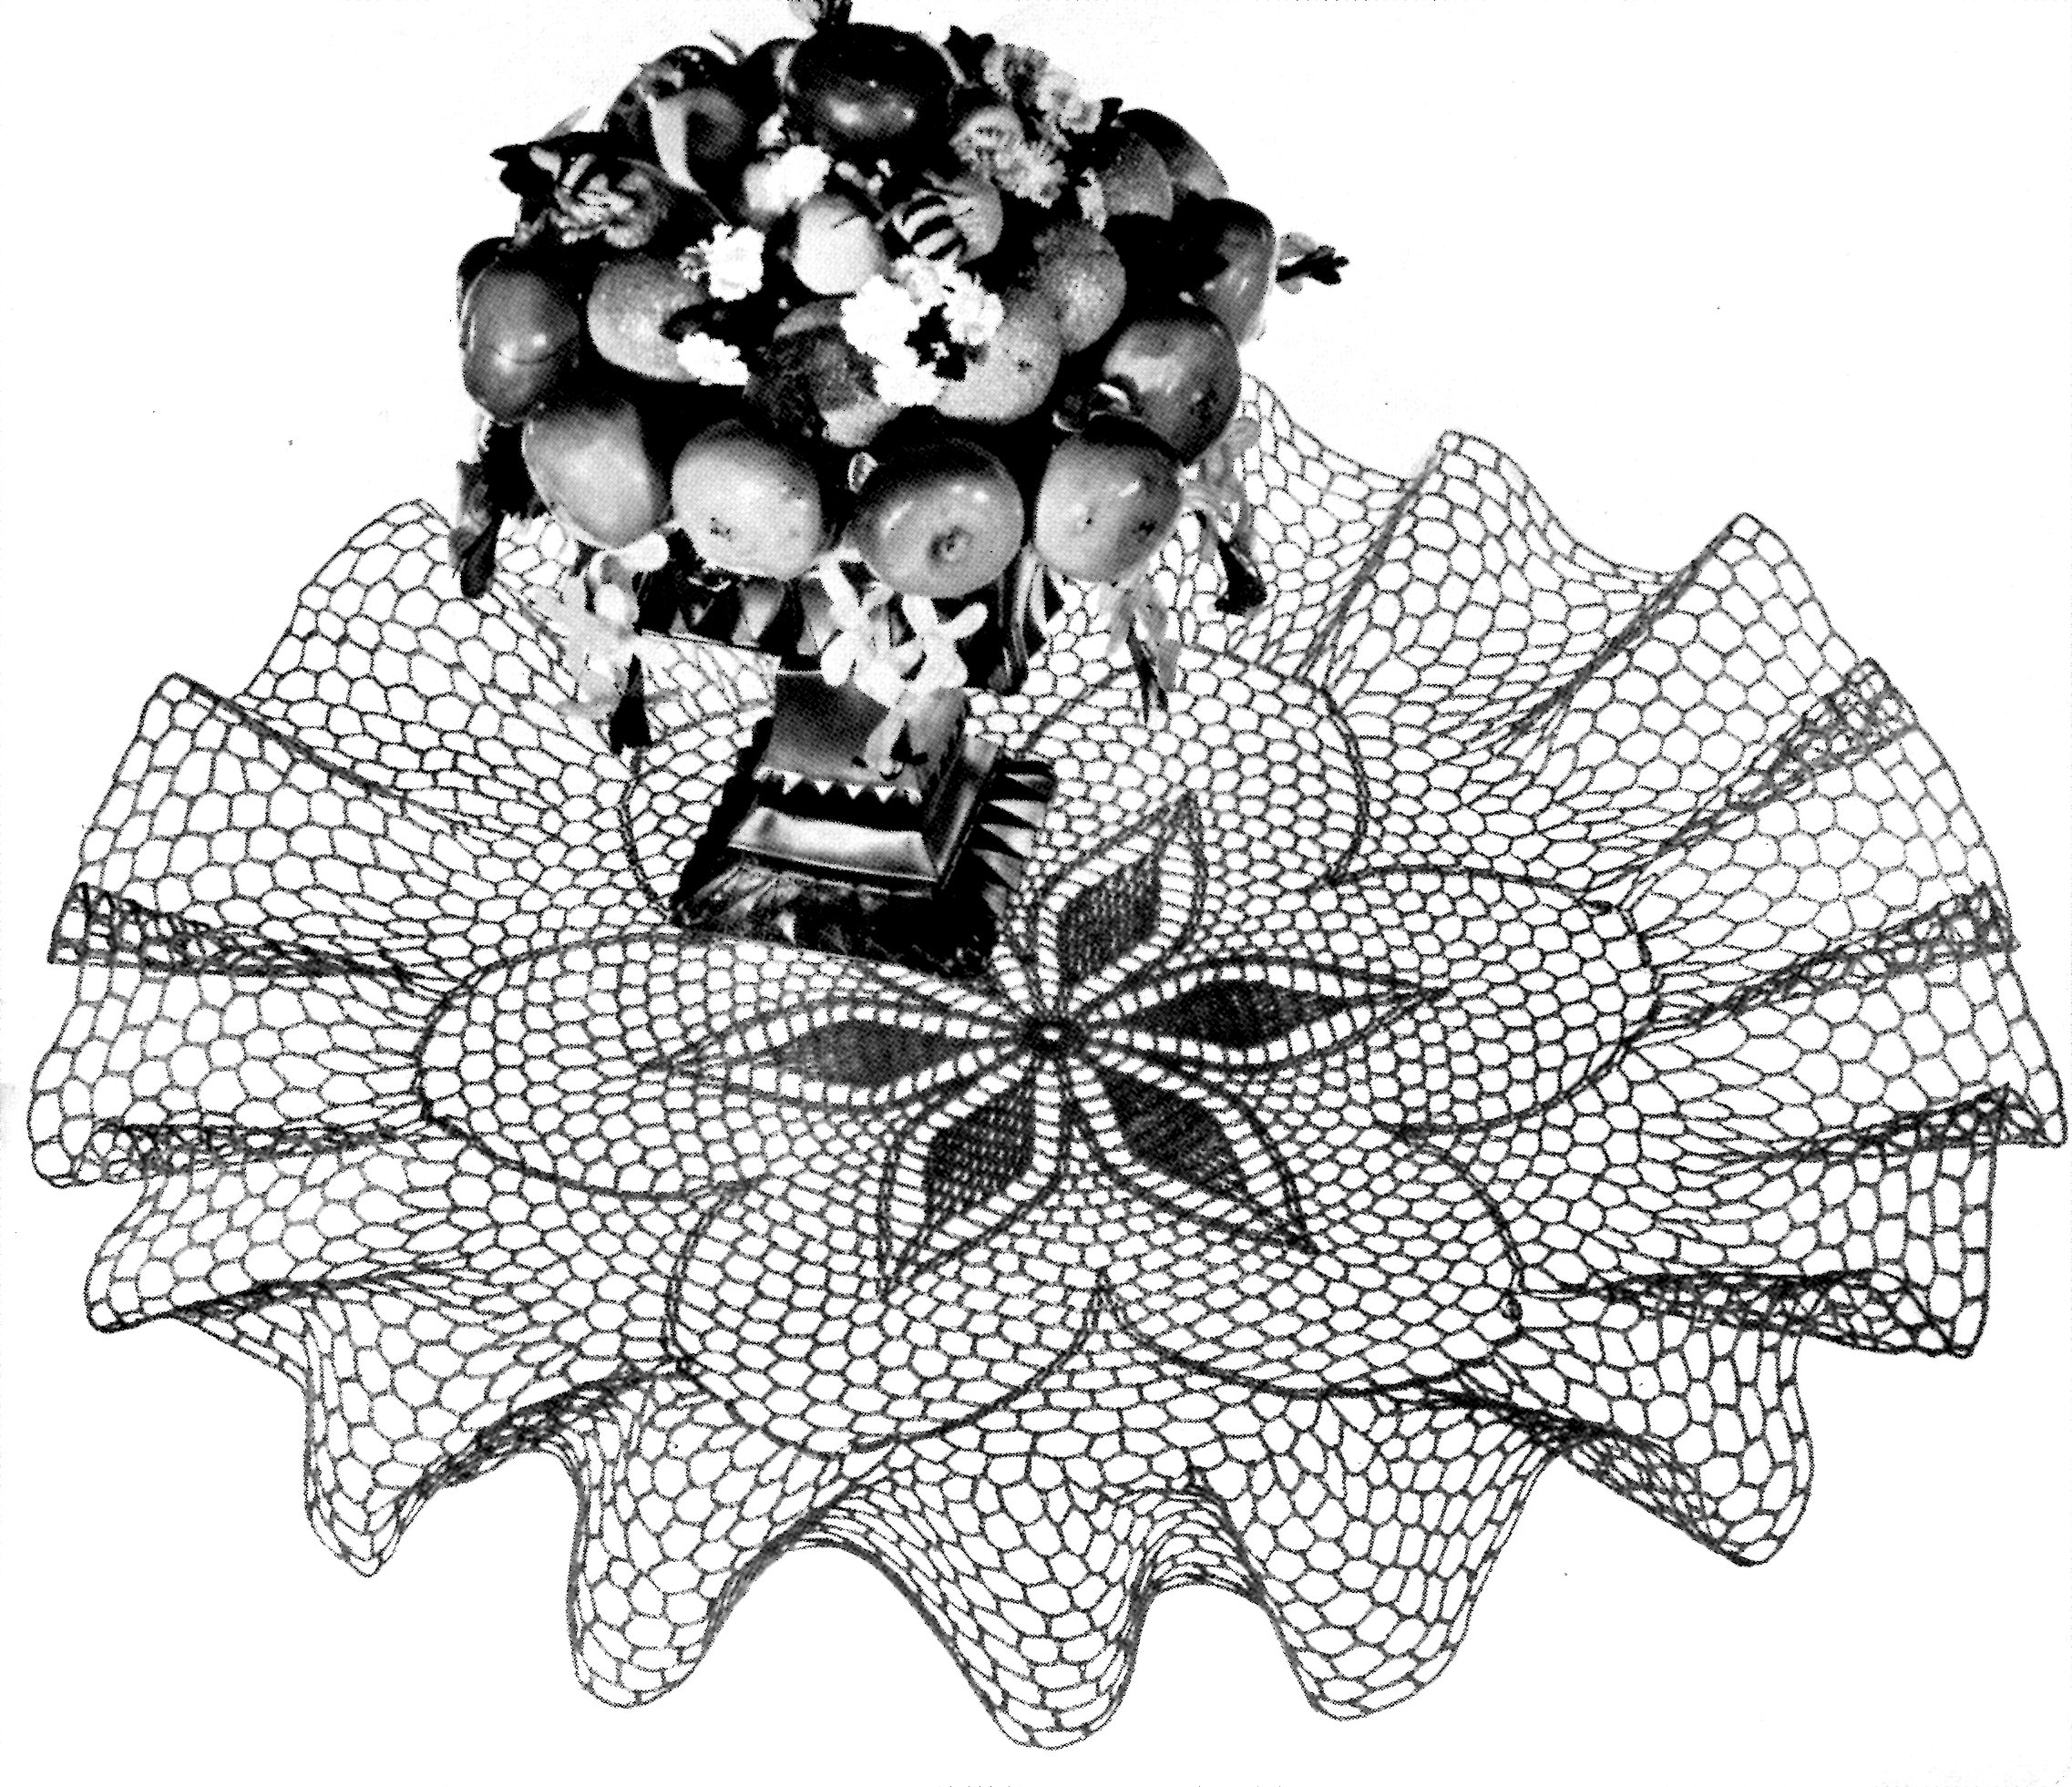 Ruffled doily pattern archives vintage crafts and more vintage crafts and more crochet doily pattern ruffled poinsettia posy bankloansurffo Image collections